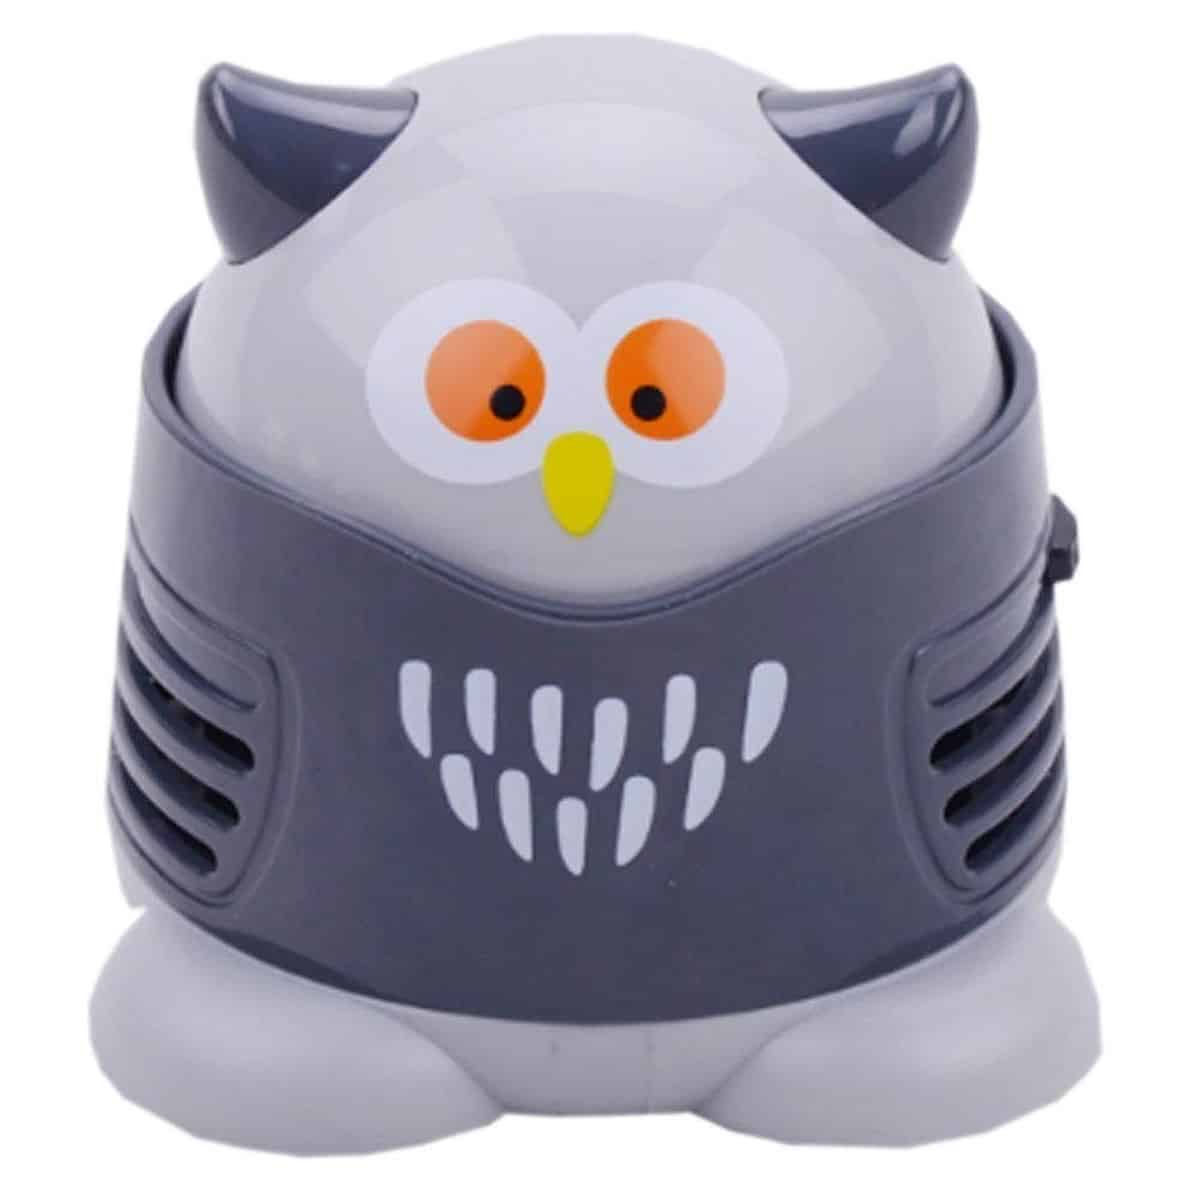 Portable Cartoon Mini Owl table Dust Vacuum Cleaner | Top Gadgets To Speed Up Your Spring Cleaning